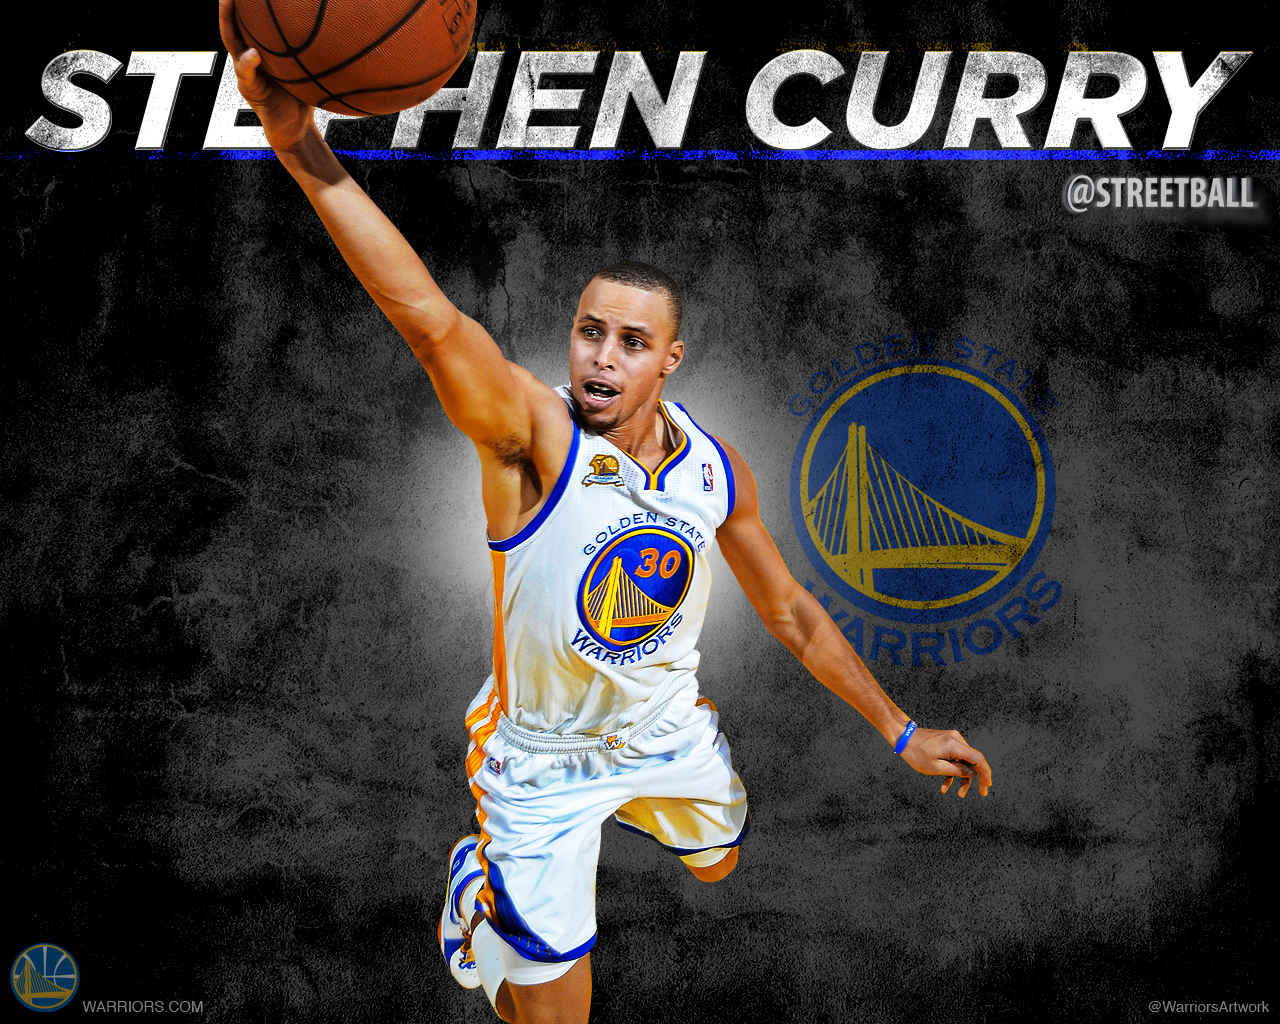 Stephen Curry Wallpaper IPad The Art Mad Wallpapers 1280x1024